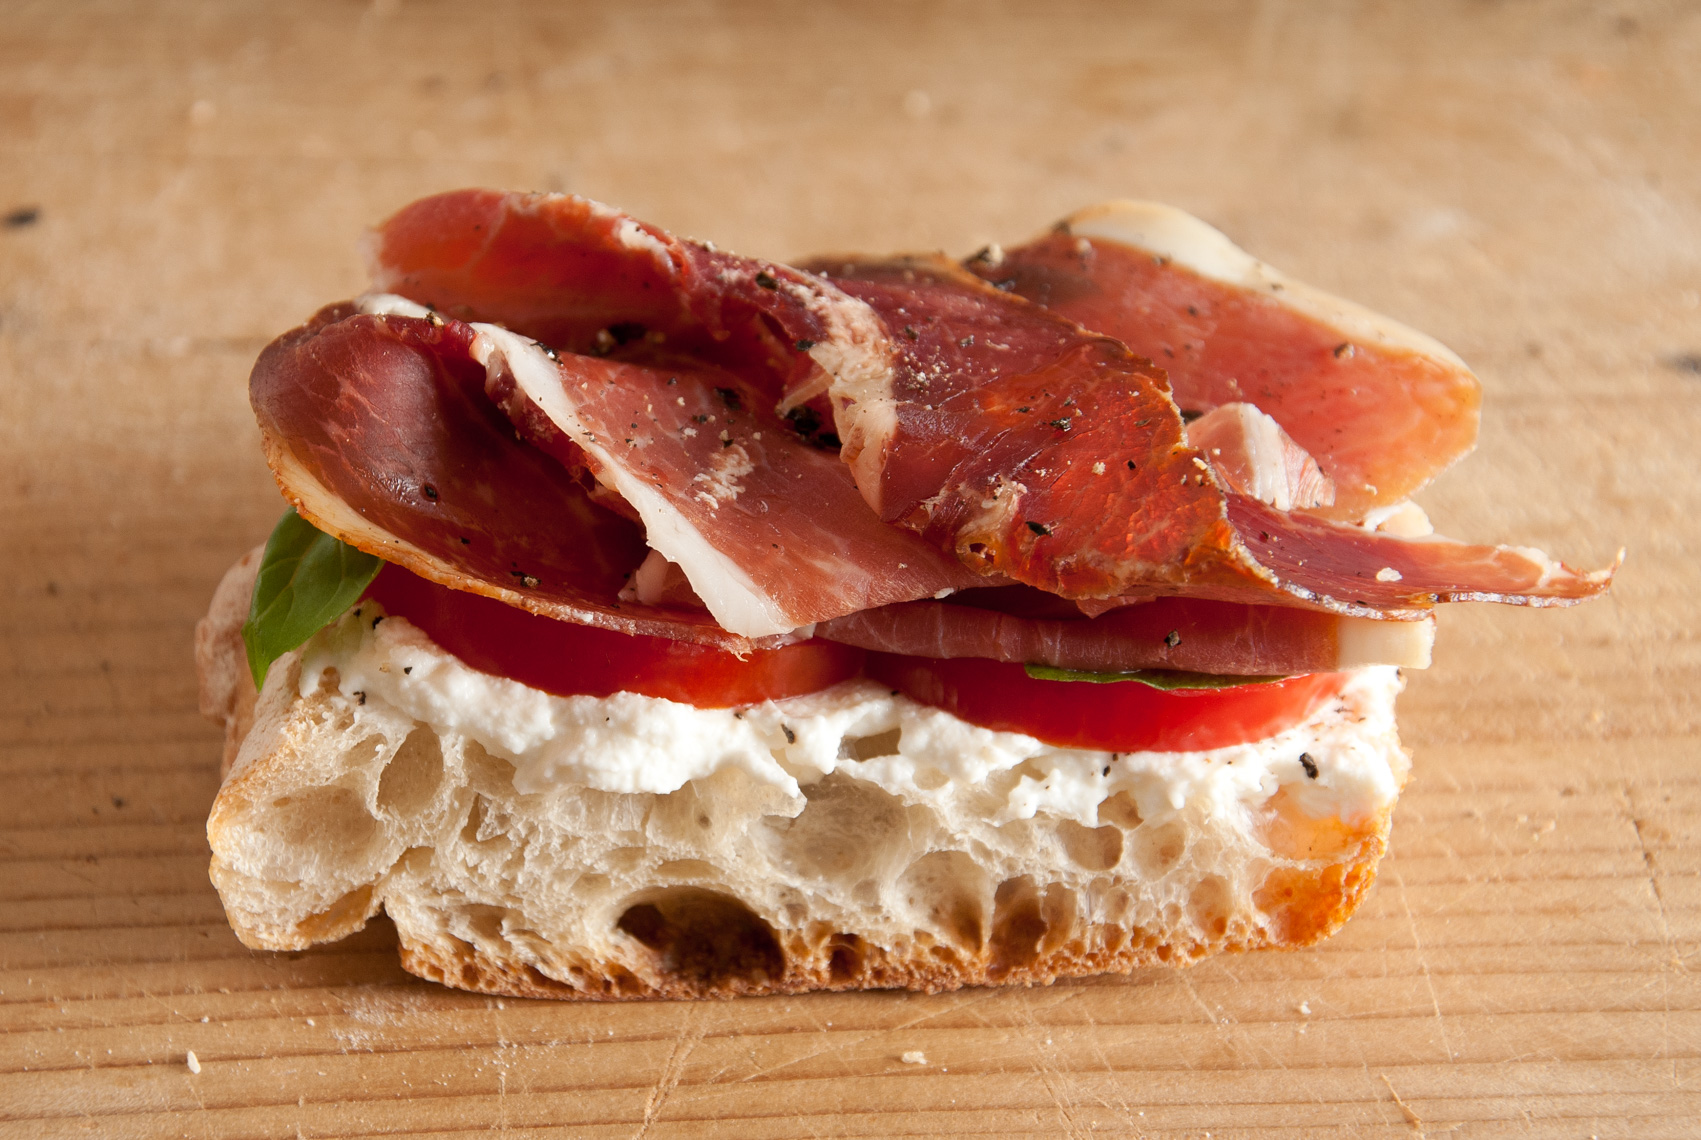 NYC Food Photographer – Prosciutto on Bread